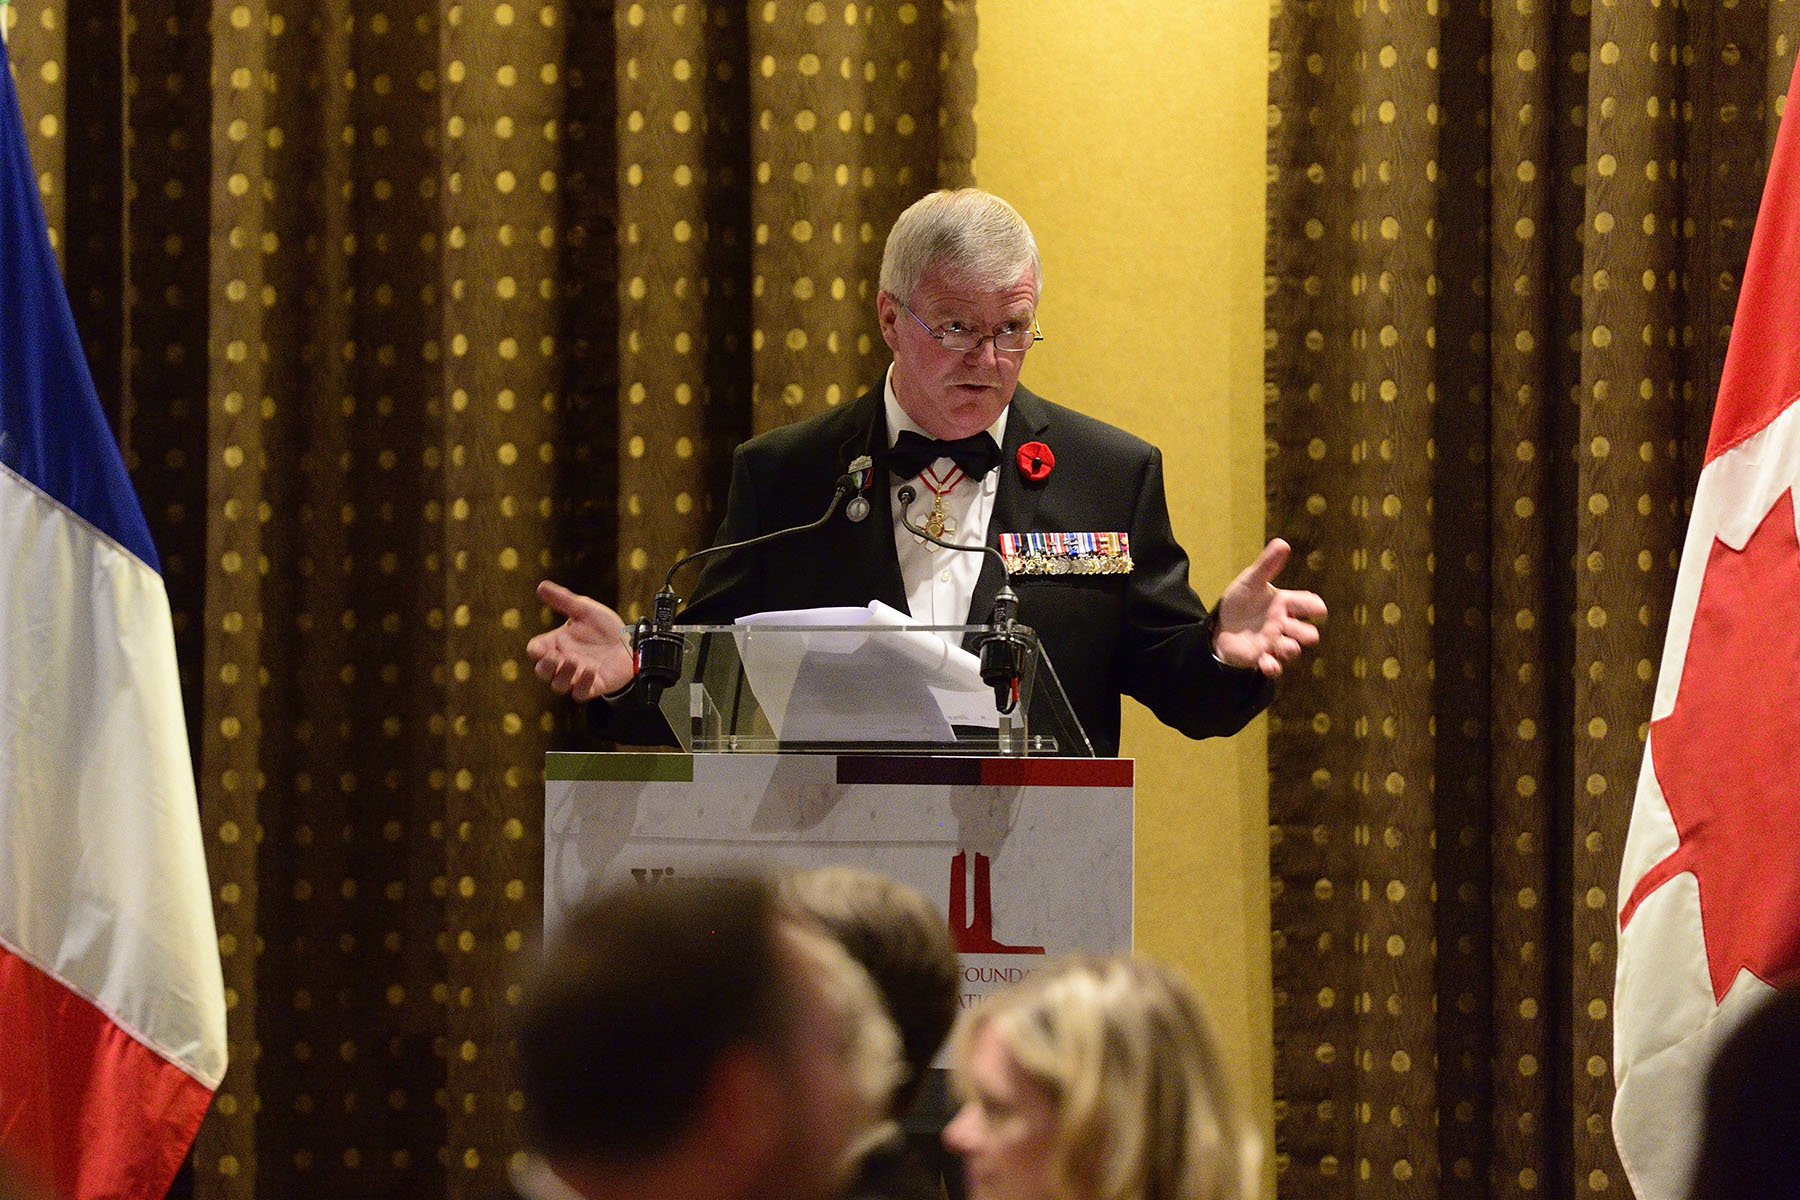 General Rick Hillier, former Chief of the Defence Staff, also delivered remarks on this occasion.